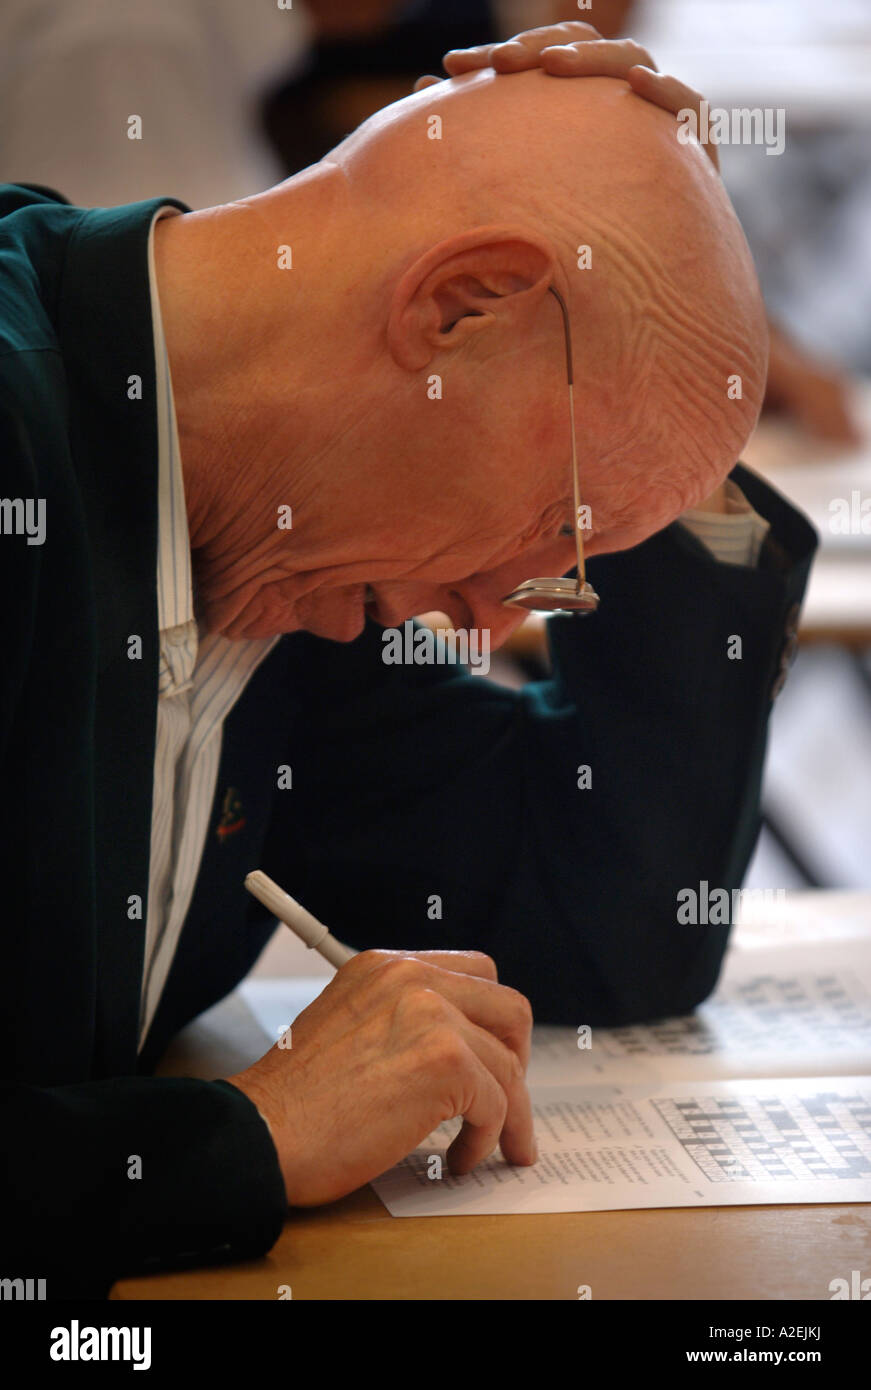 A CONTESTANT AT THE TIMES NATIONAL CROSSWORD COMPETITION CUP DURING THE CHAMPIONSHIPS IN CHELTENHAM UK 2006 Stock Photo